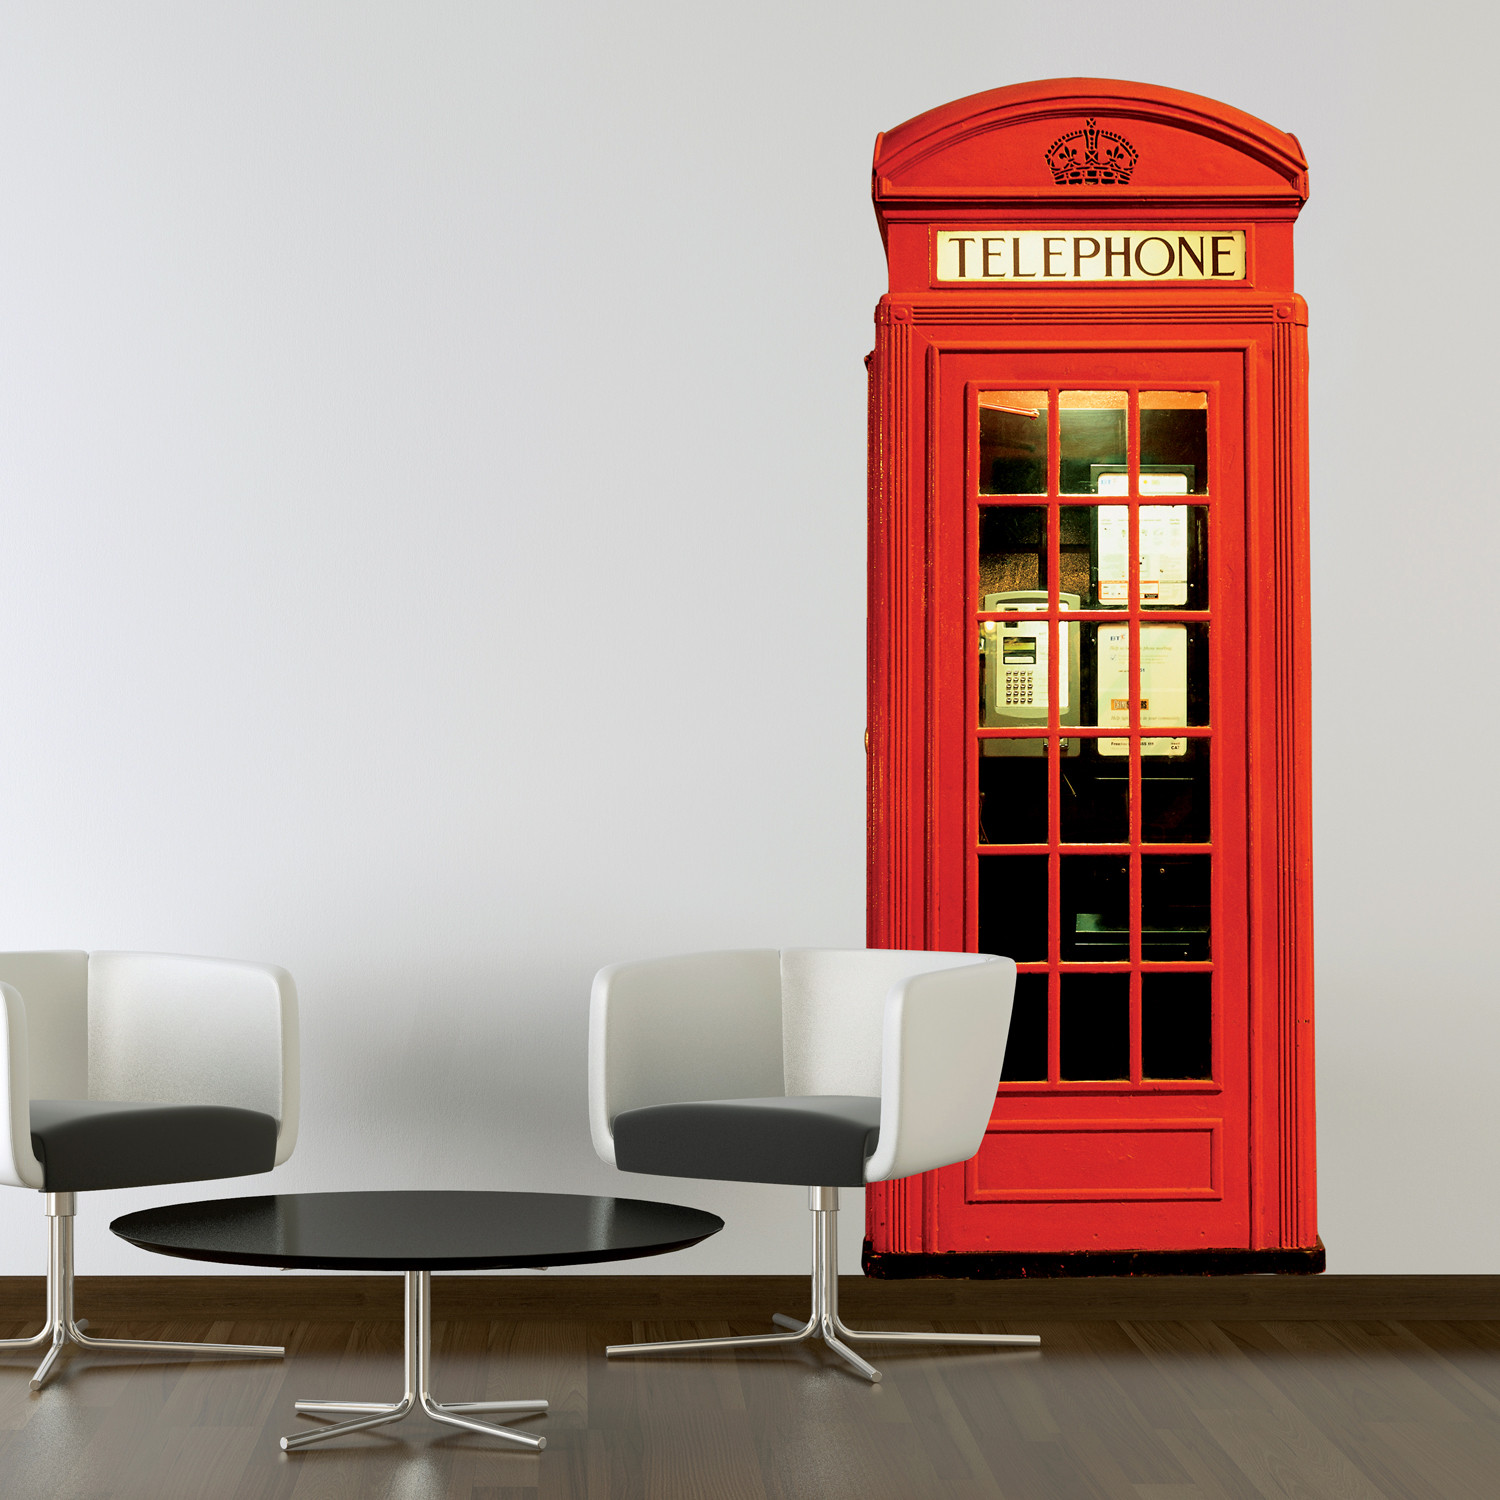 Beautiful Corded Wall Phone Wall Mounted Phones London Phone Box London Phone Box Wall Murals Touch interior Modern Wall Phone